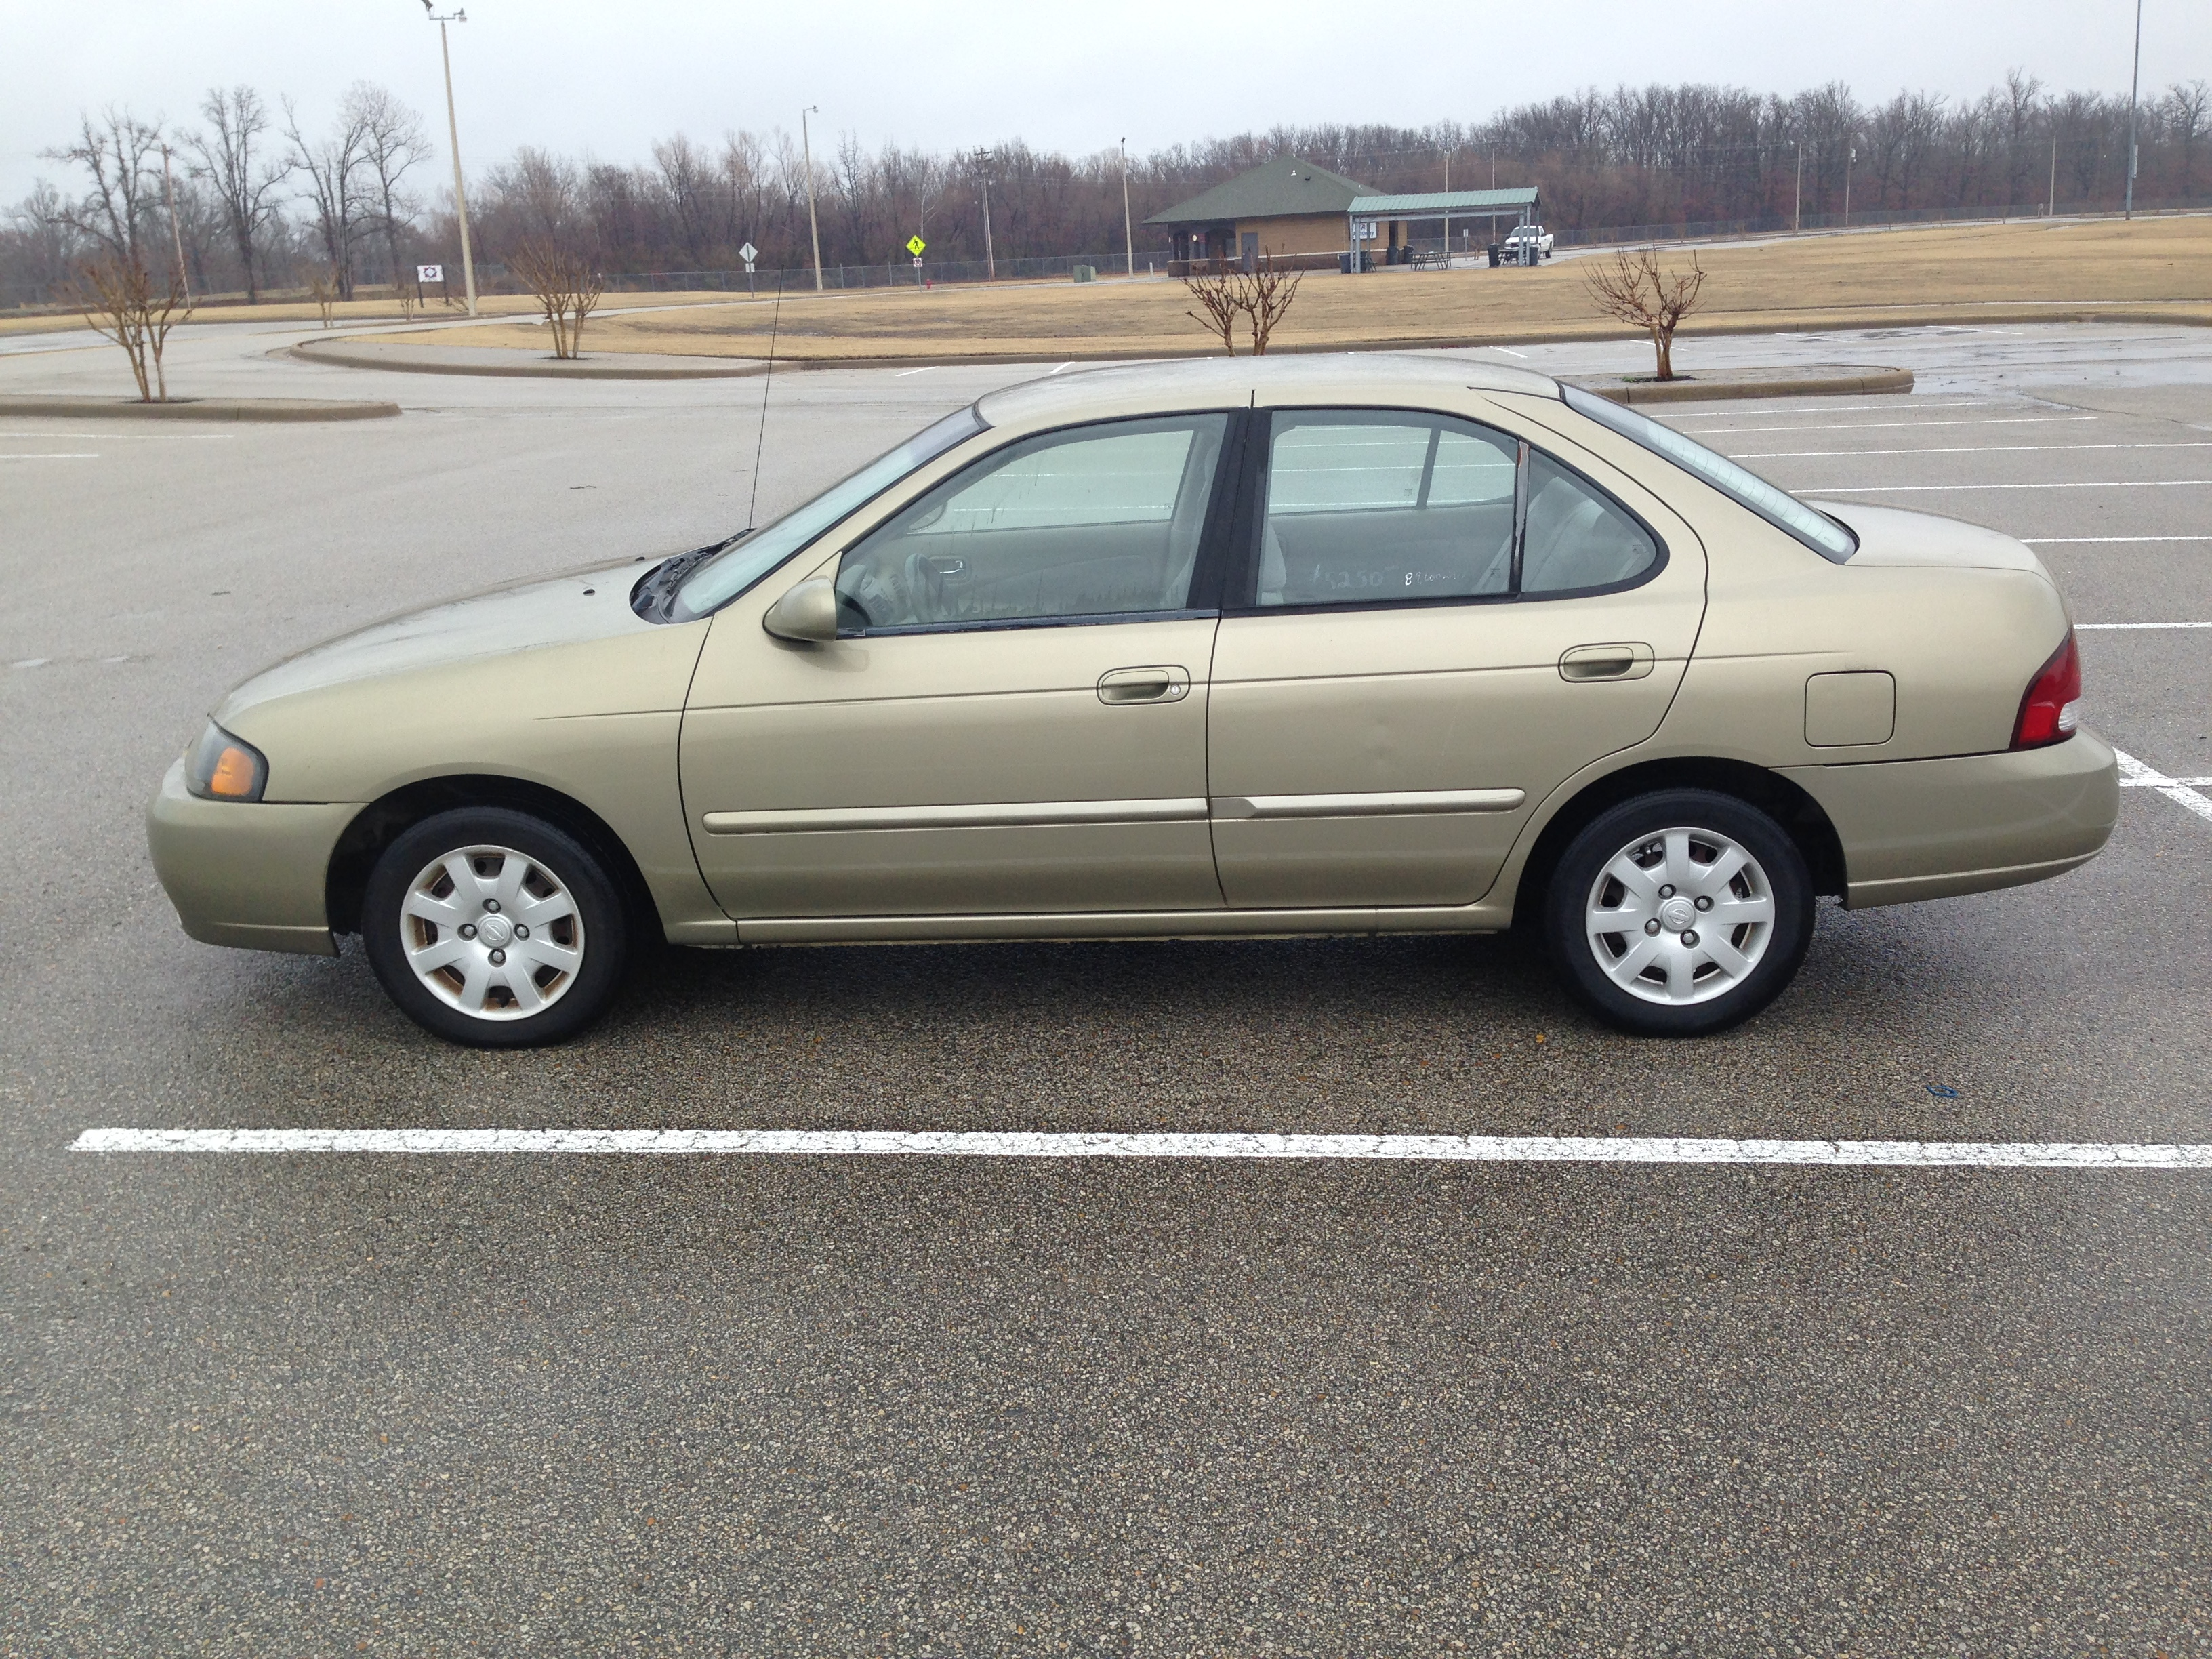 Red White And Blue Auto Sales >> Green 2002 Nissan Sentra | J & L Auto Sales